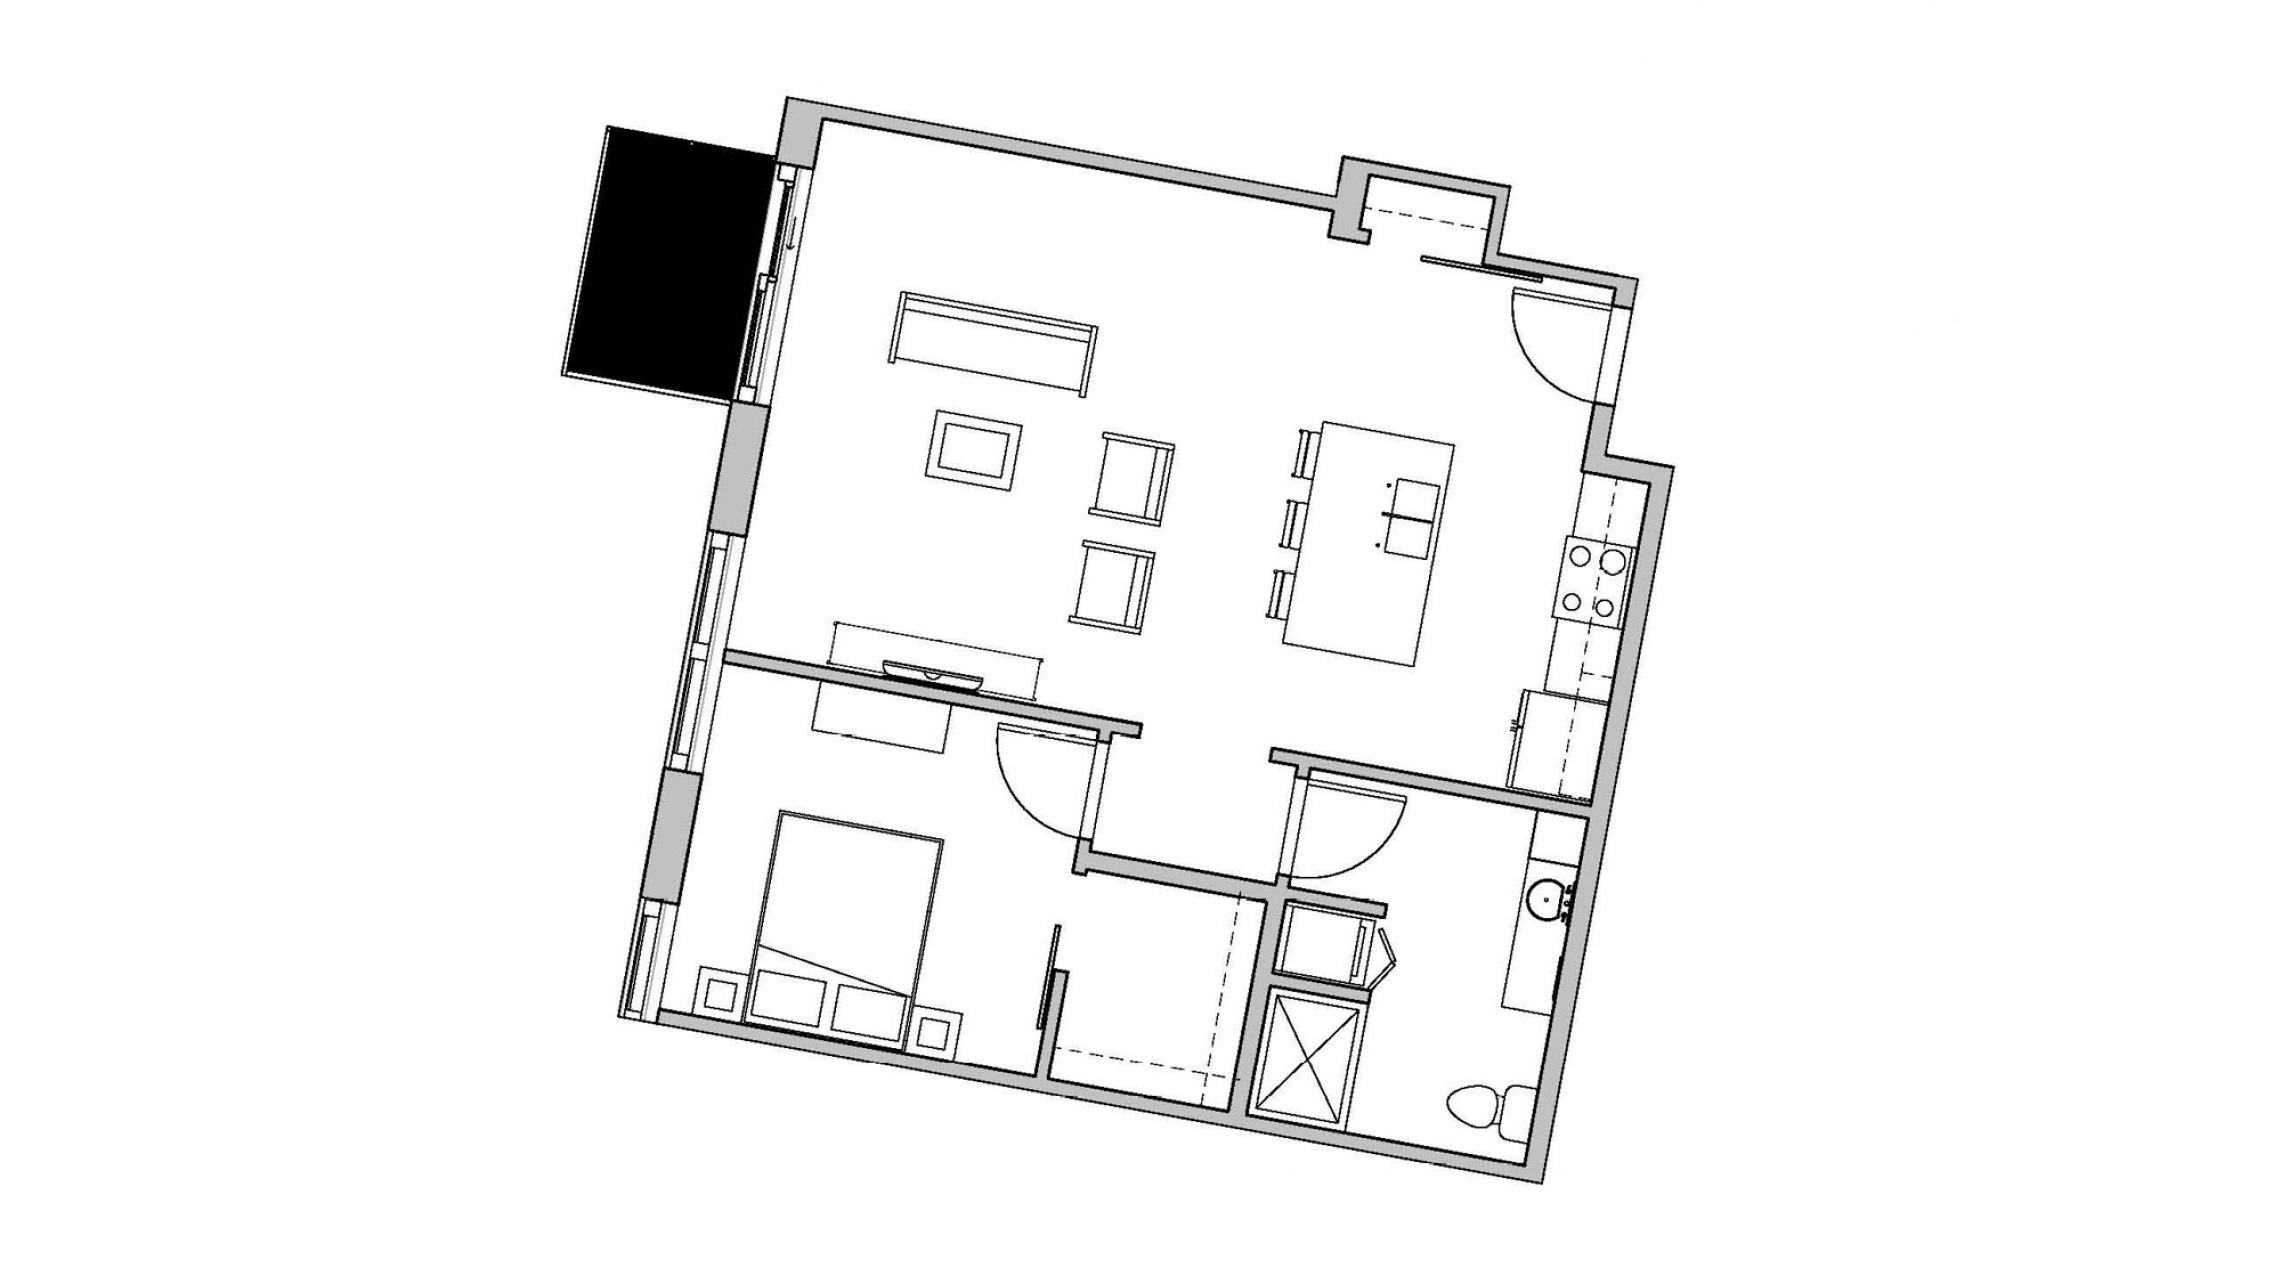 ULI Seven27 433 - One Bedroom, One Bathroom